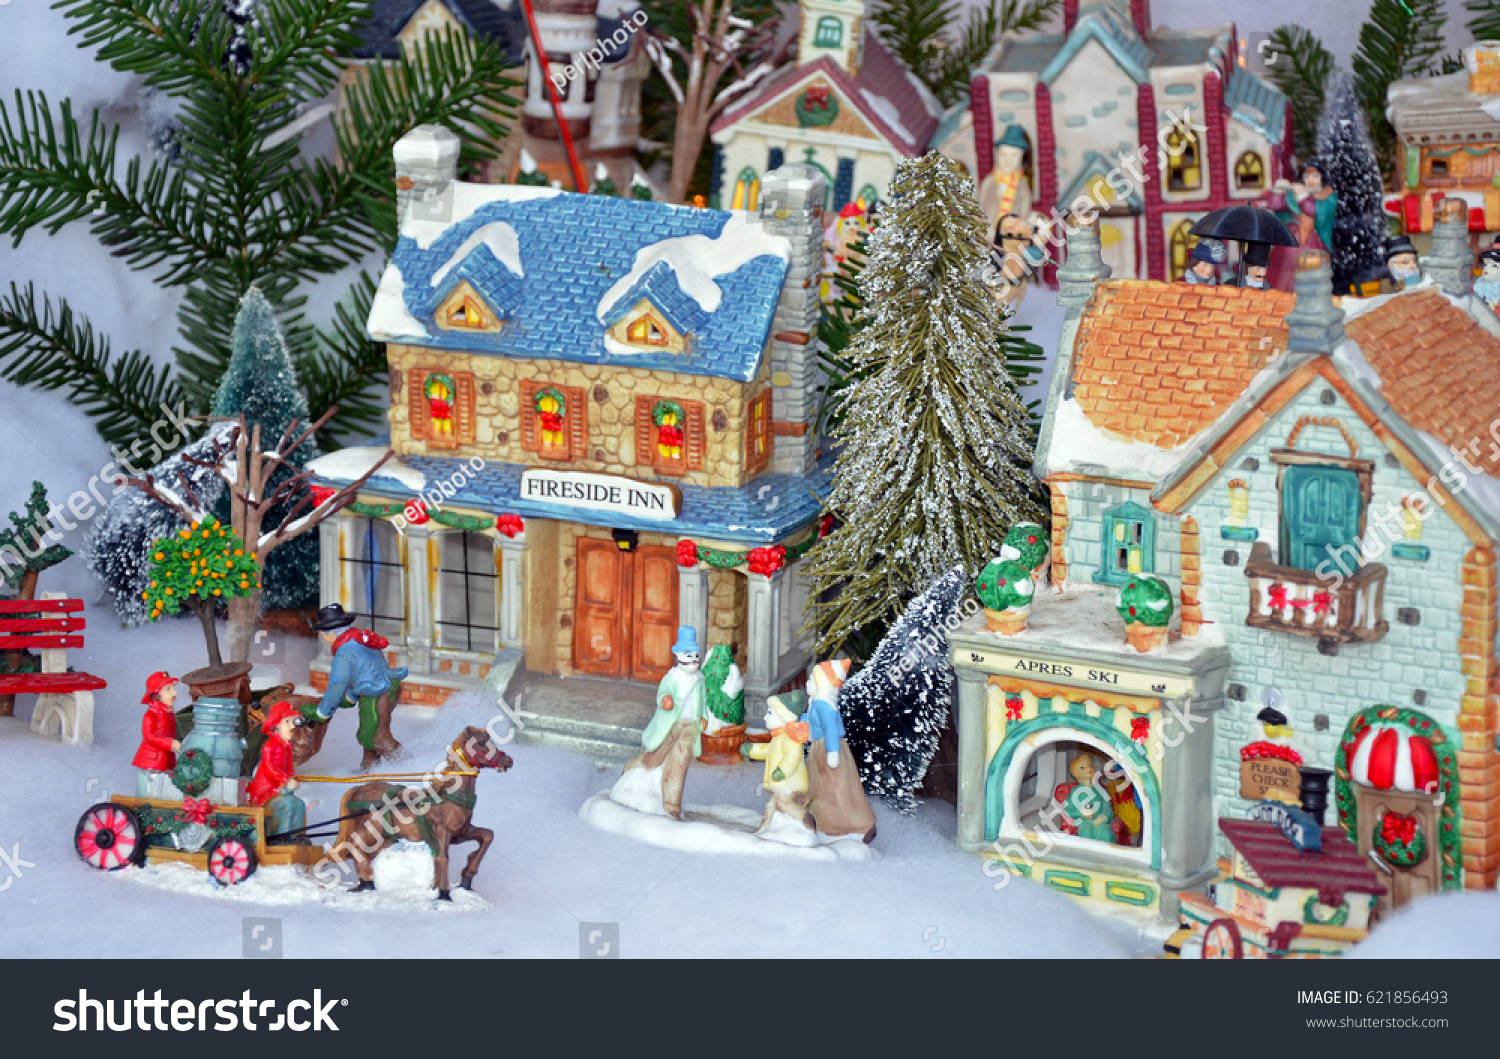 colorful miniature christmas village display - Miniature Christmas Town Decorations